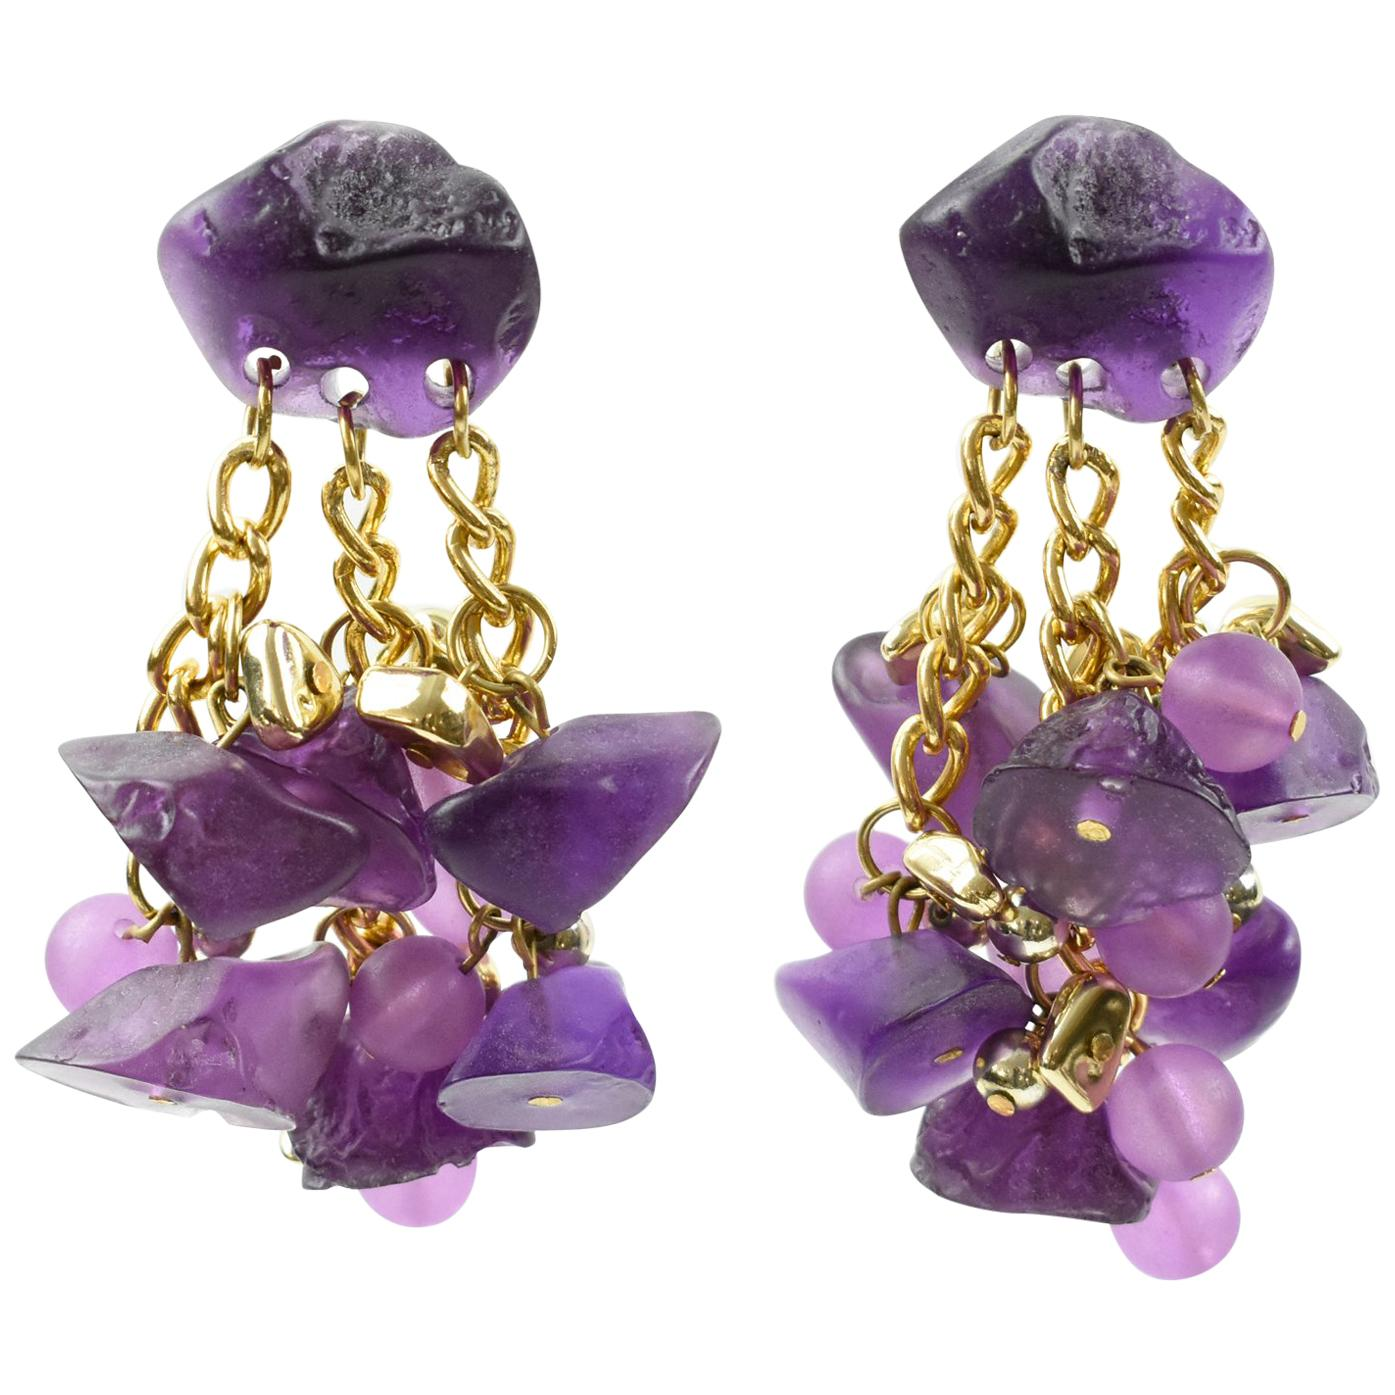 5965c245d23ef1 Fashion Chandelier Earrings - 218 For Sale at 1stdibs